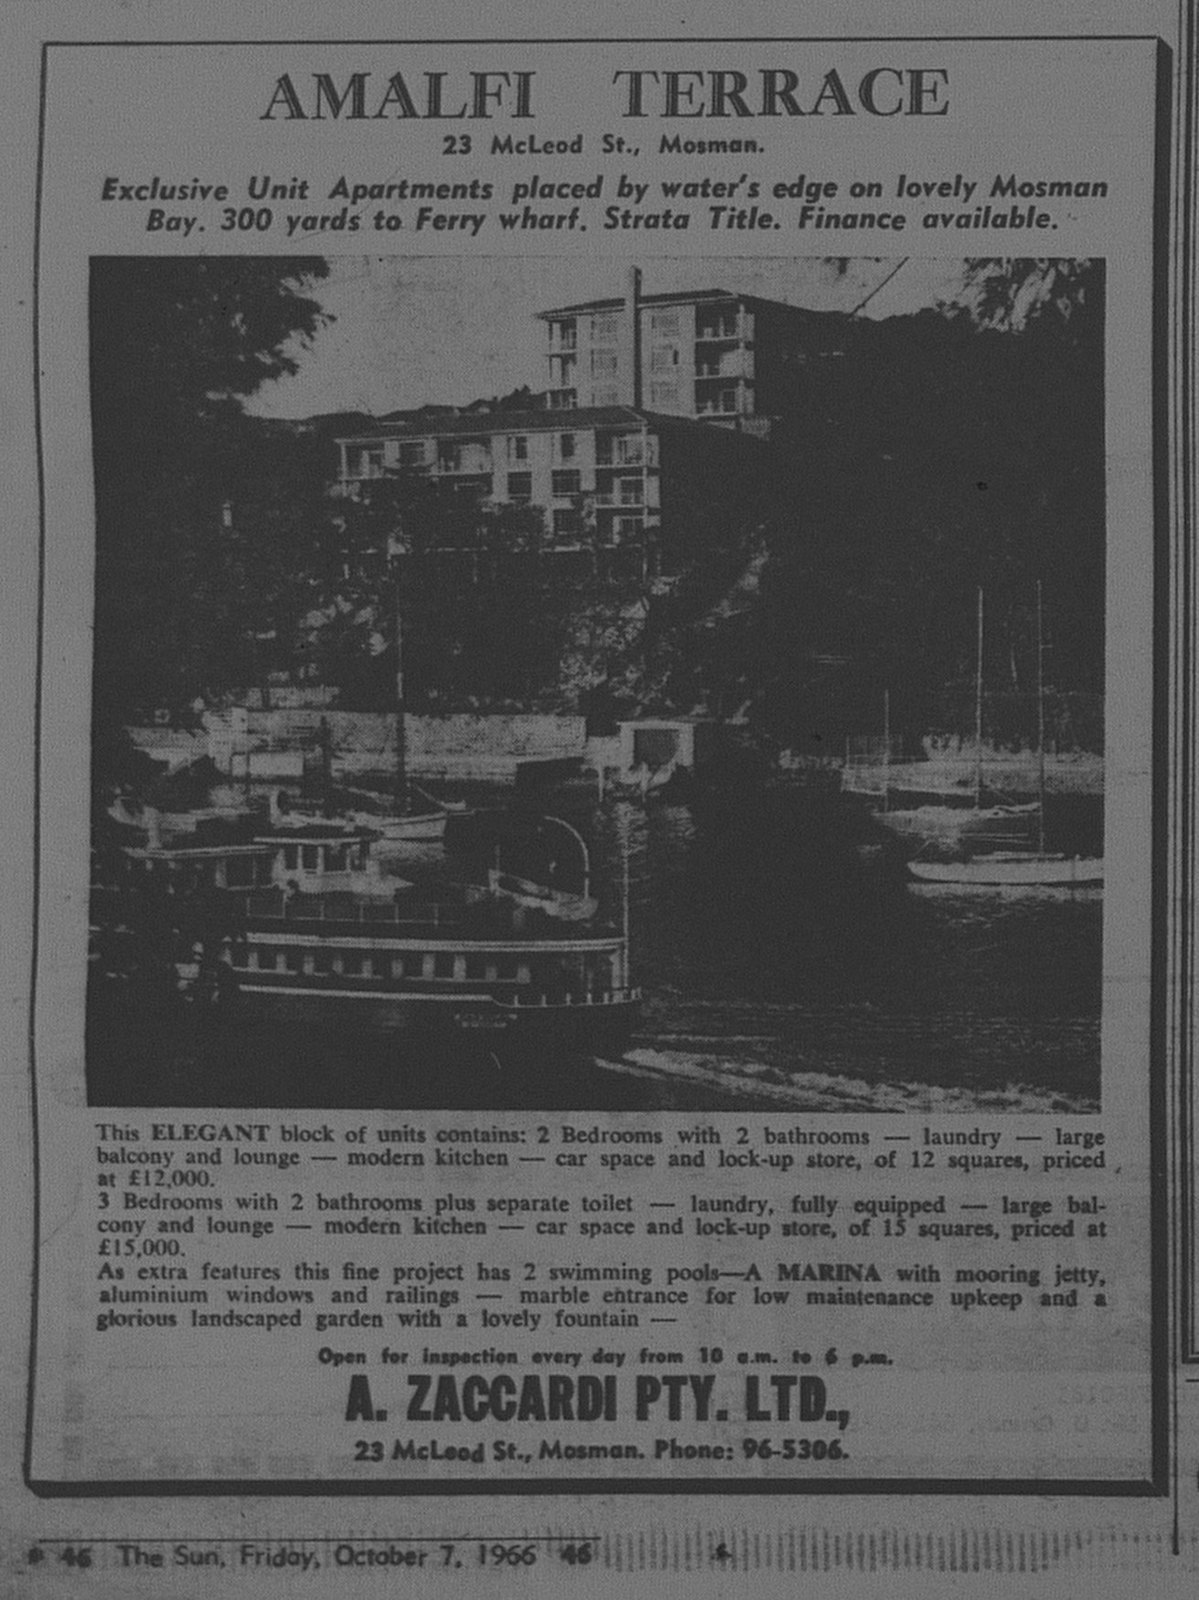 Amalfi Terrace Mosman Ad October 7 1966 The Sun 46